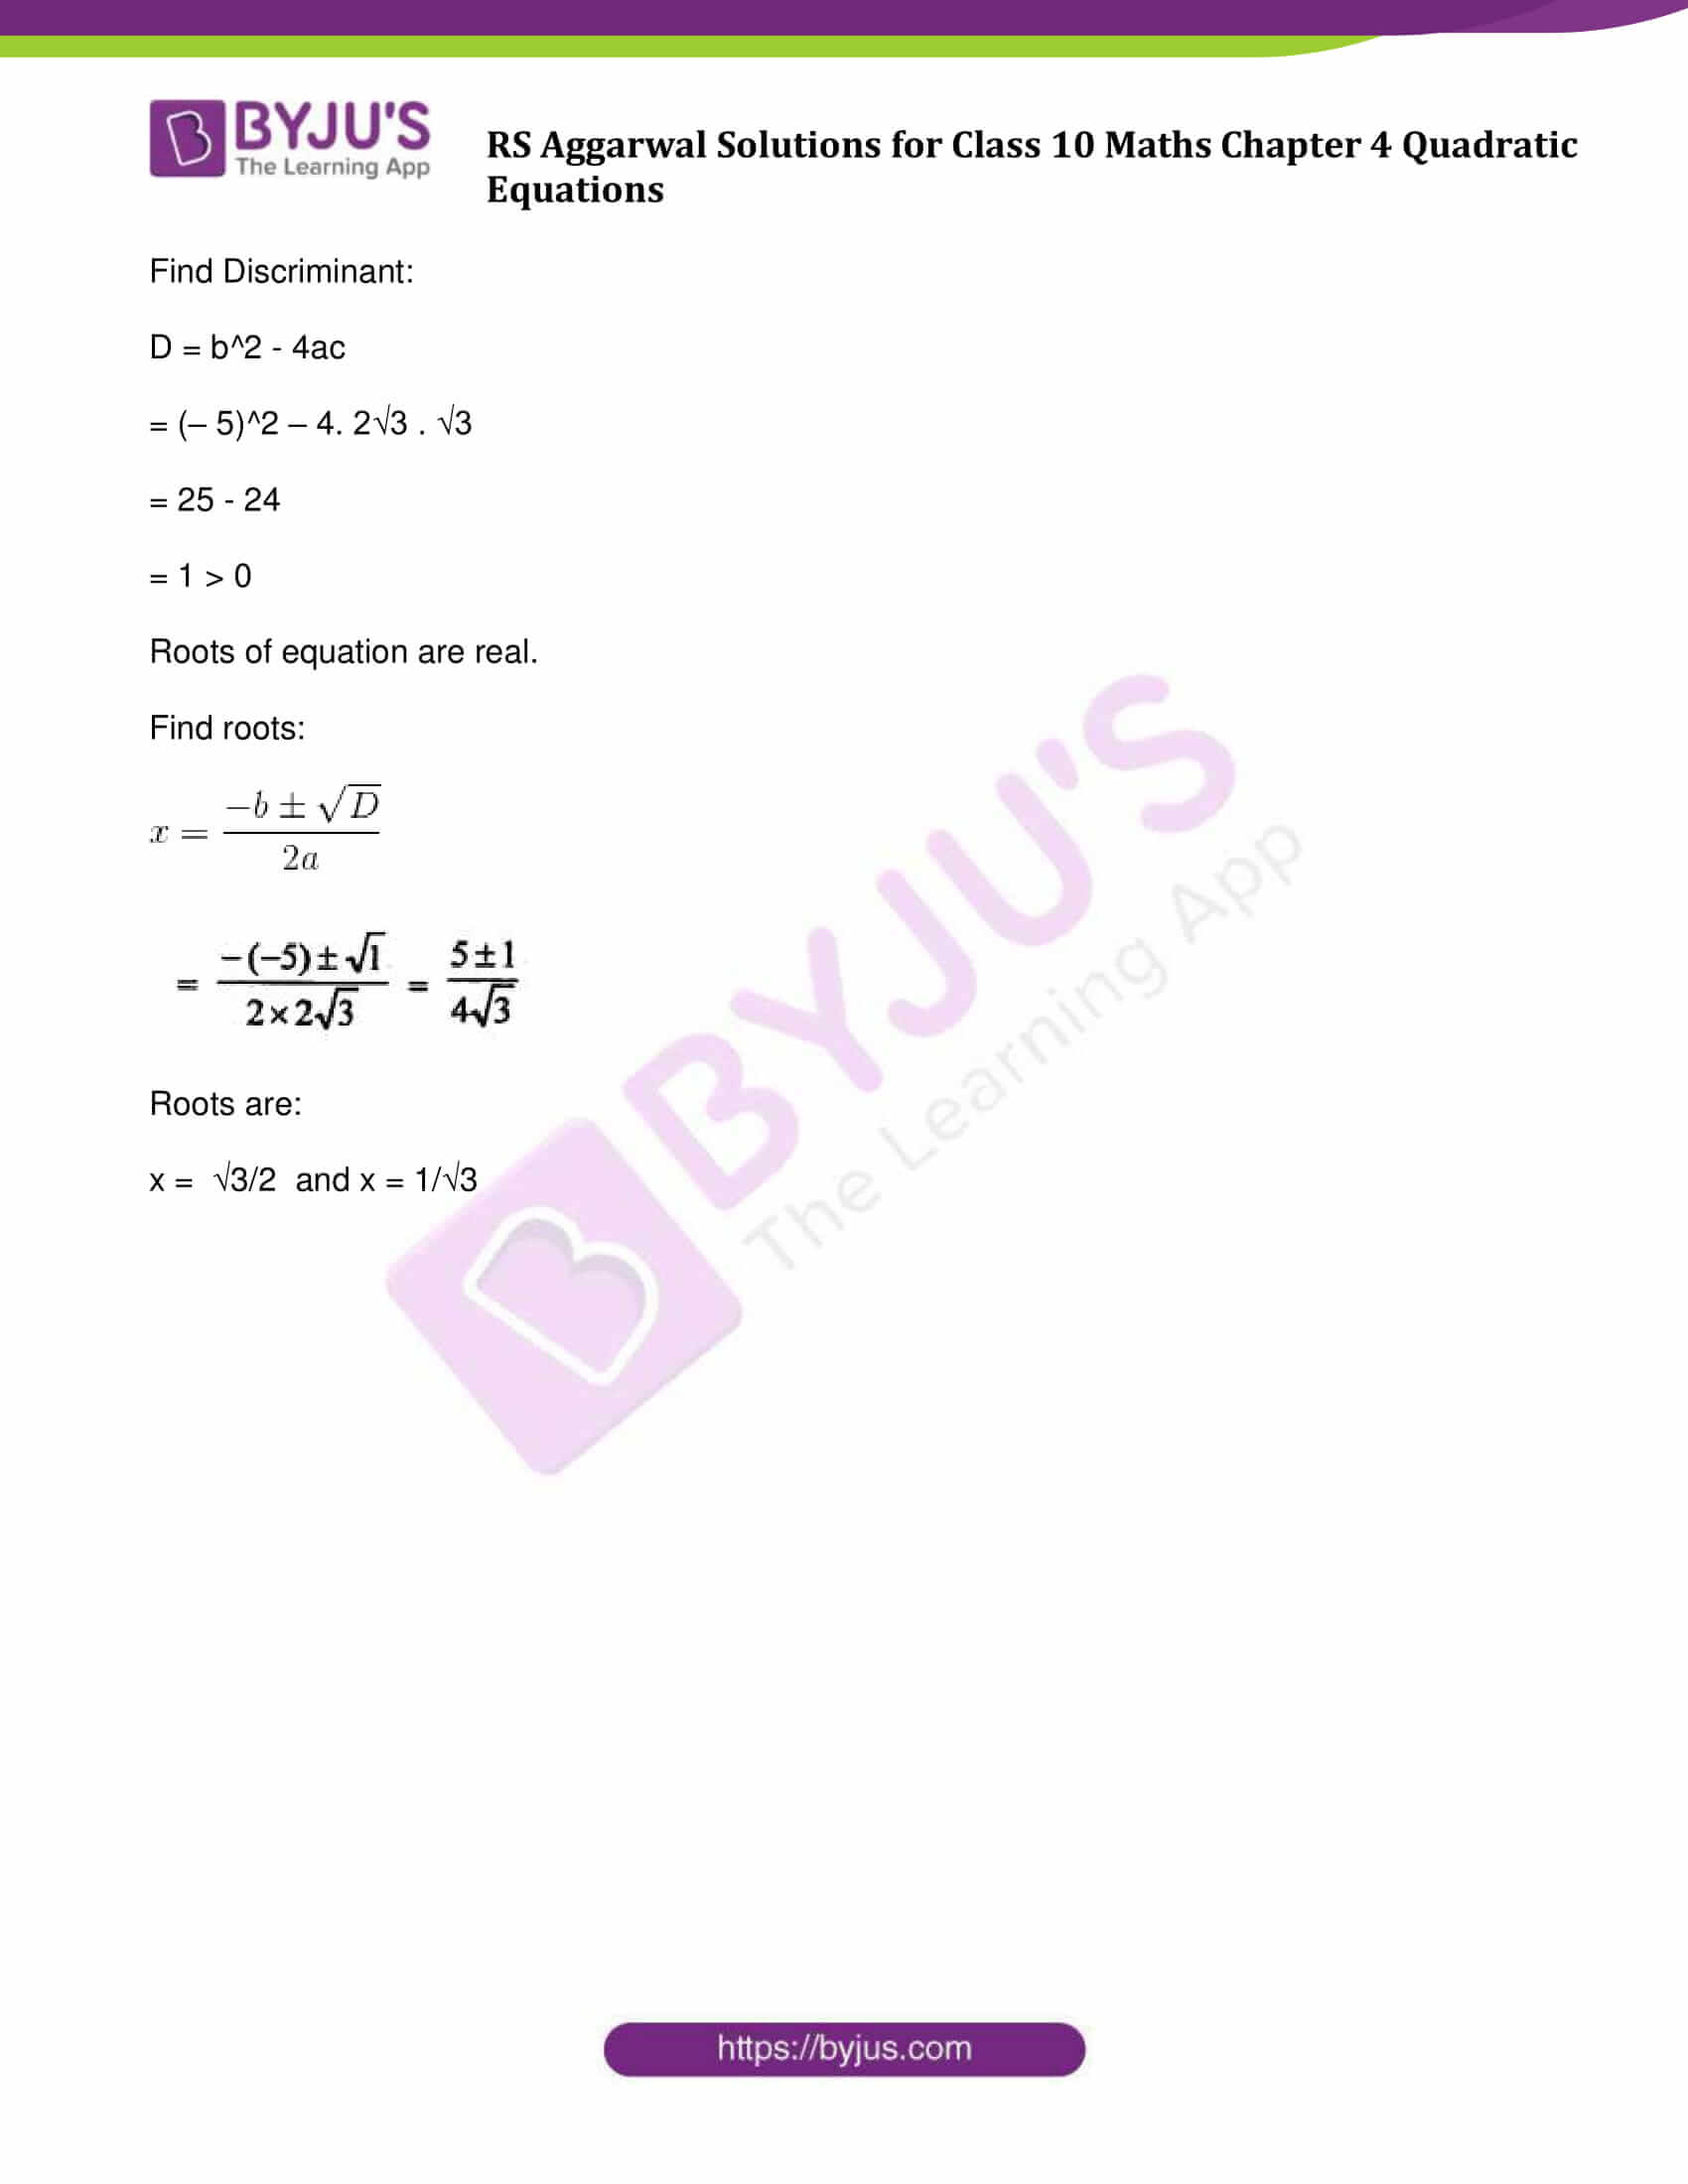 RS Aggarwal Sol class 10 Maths Chapter 4C